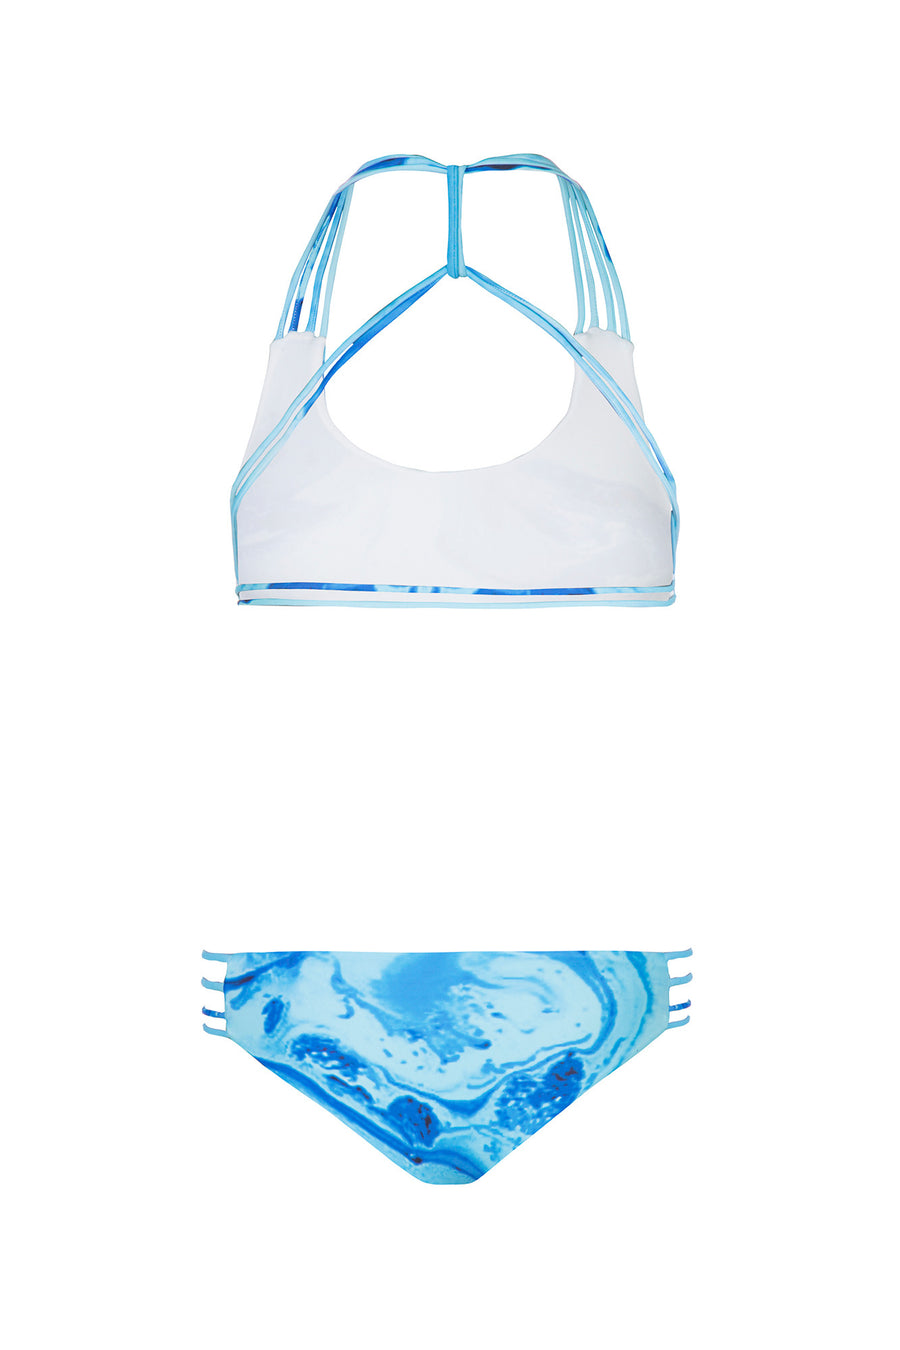 """Tyra"" T-Back Reversible Bikini [Ocean Rush / Indian Summer White]"